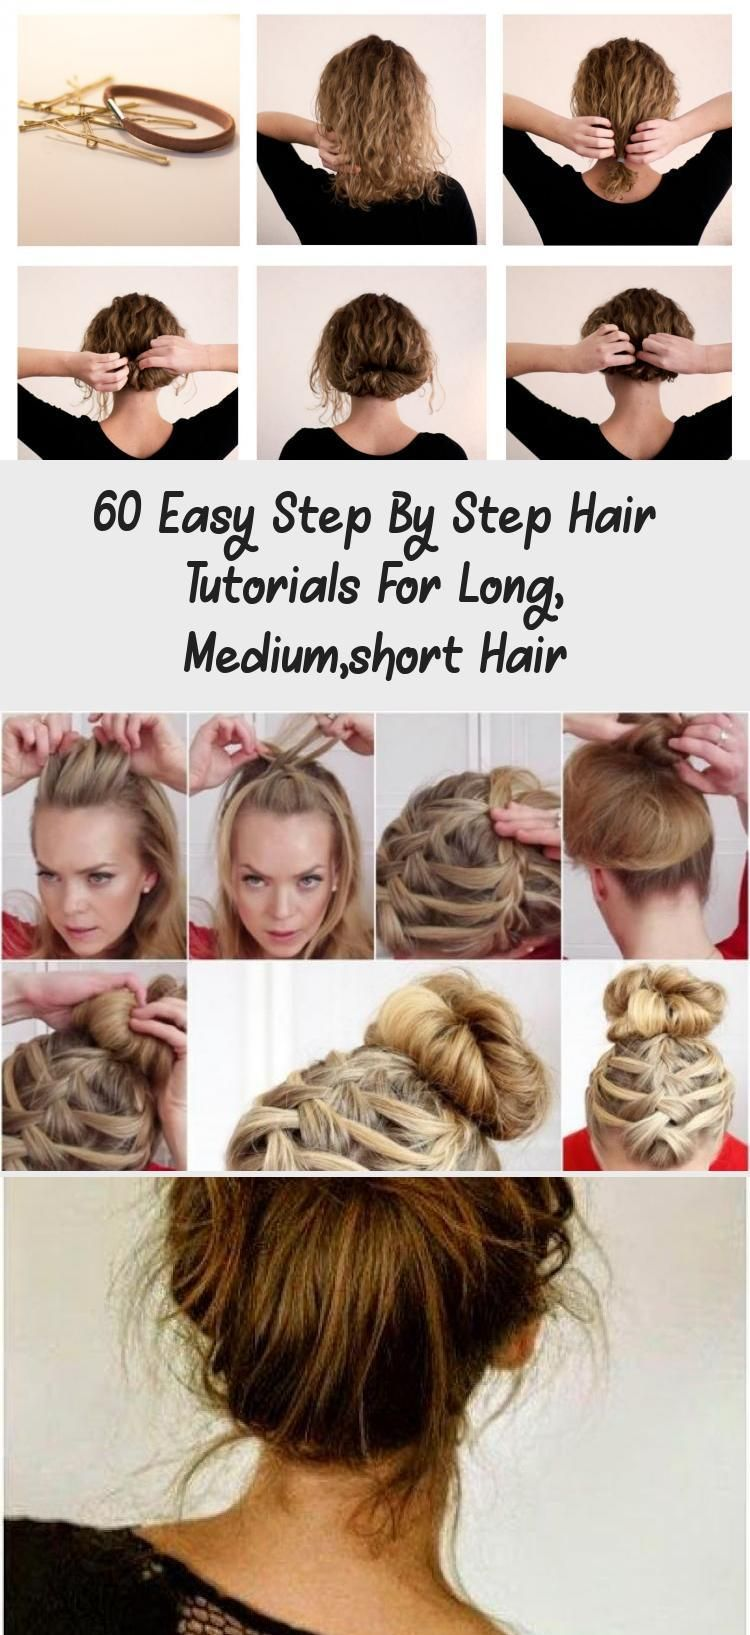 60 Easy Step By Step Hair Tutorials For Long Medium Short Hair Hair Care Bunupdo Step By Step Messy Bun In 2020 Hair Tutorial Short Hair Tutorial Medium Short Hair